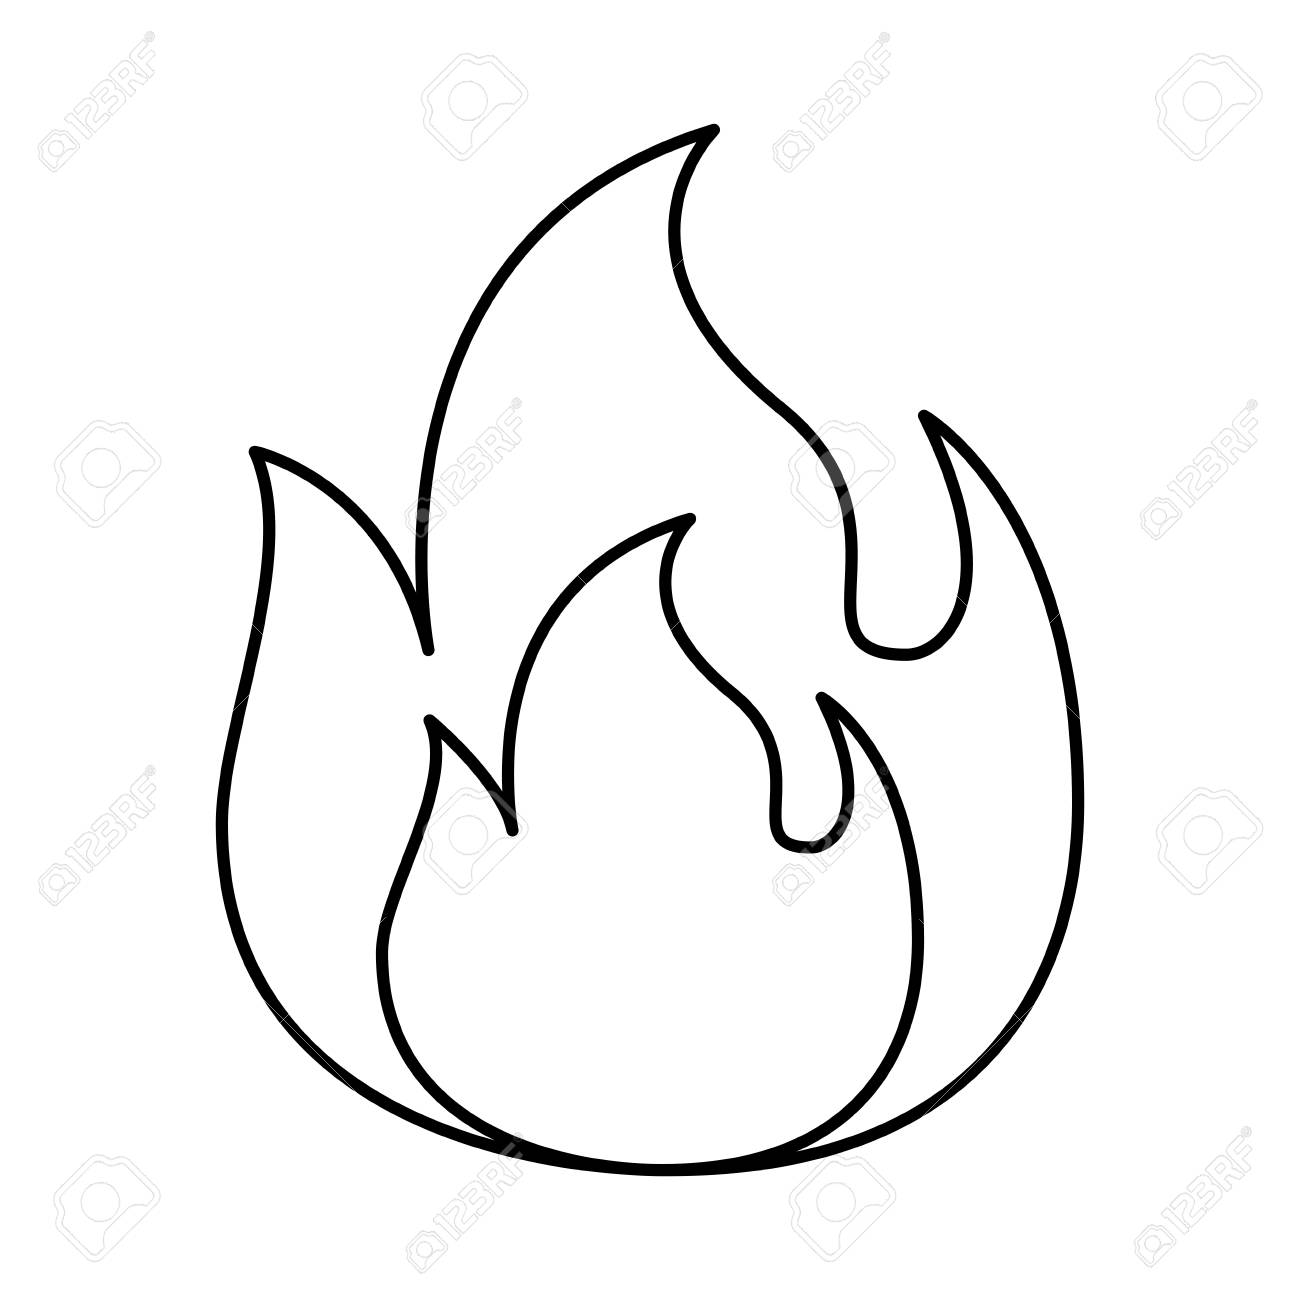 Flame Line Drawing